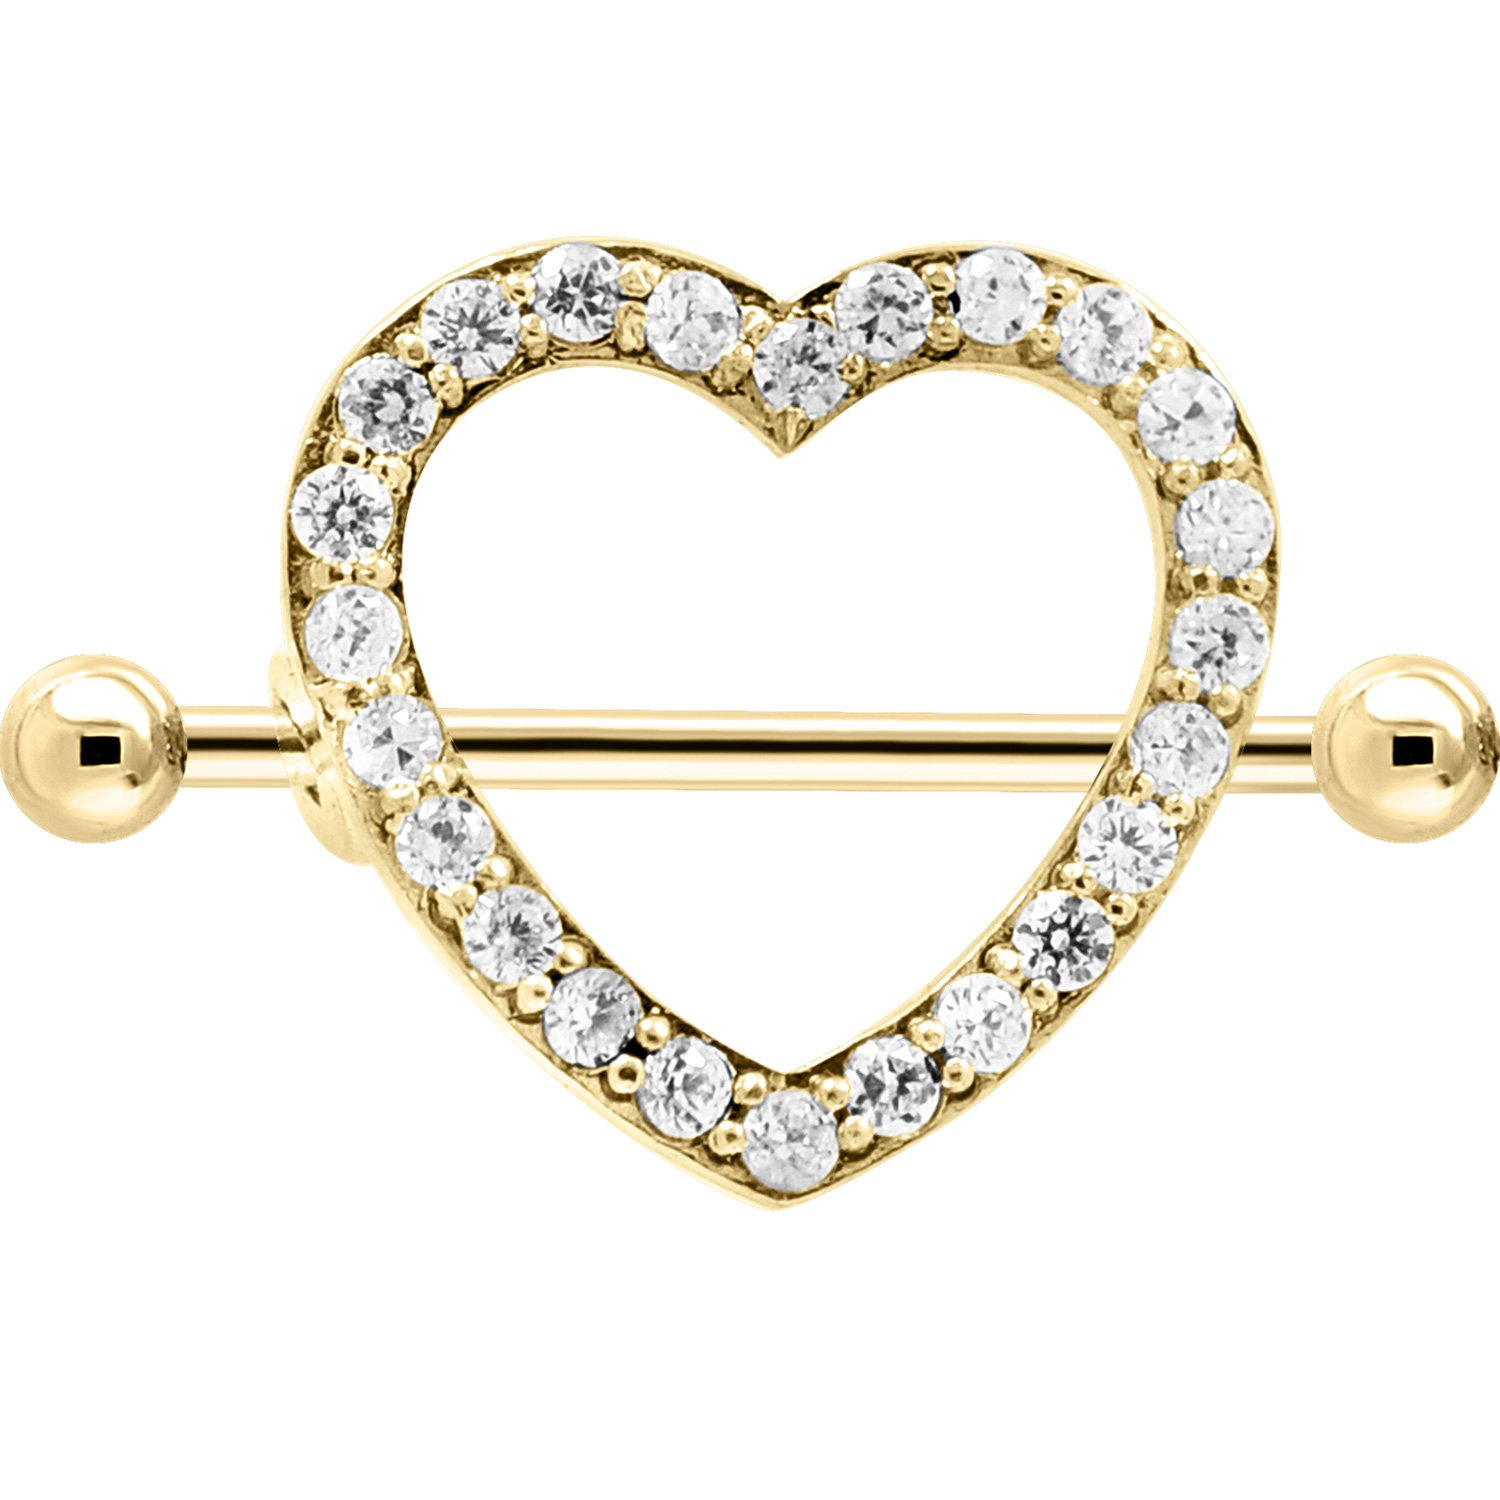 14K Gold Externally Threaded Nipple Shield 14K White Gold Priced And Sold Individually Mr.Piercing Nipple Rings pr/_sku/_208570